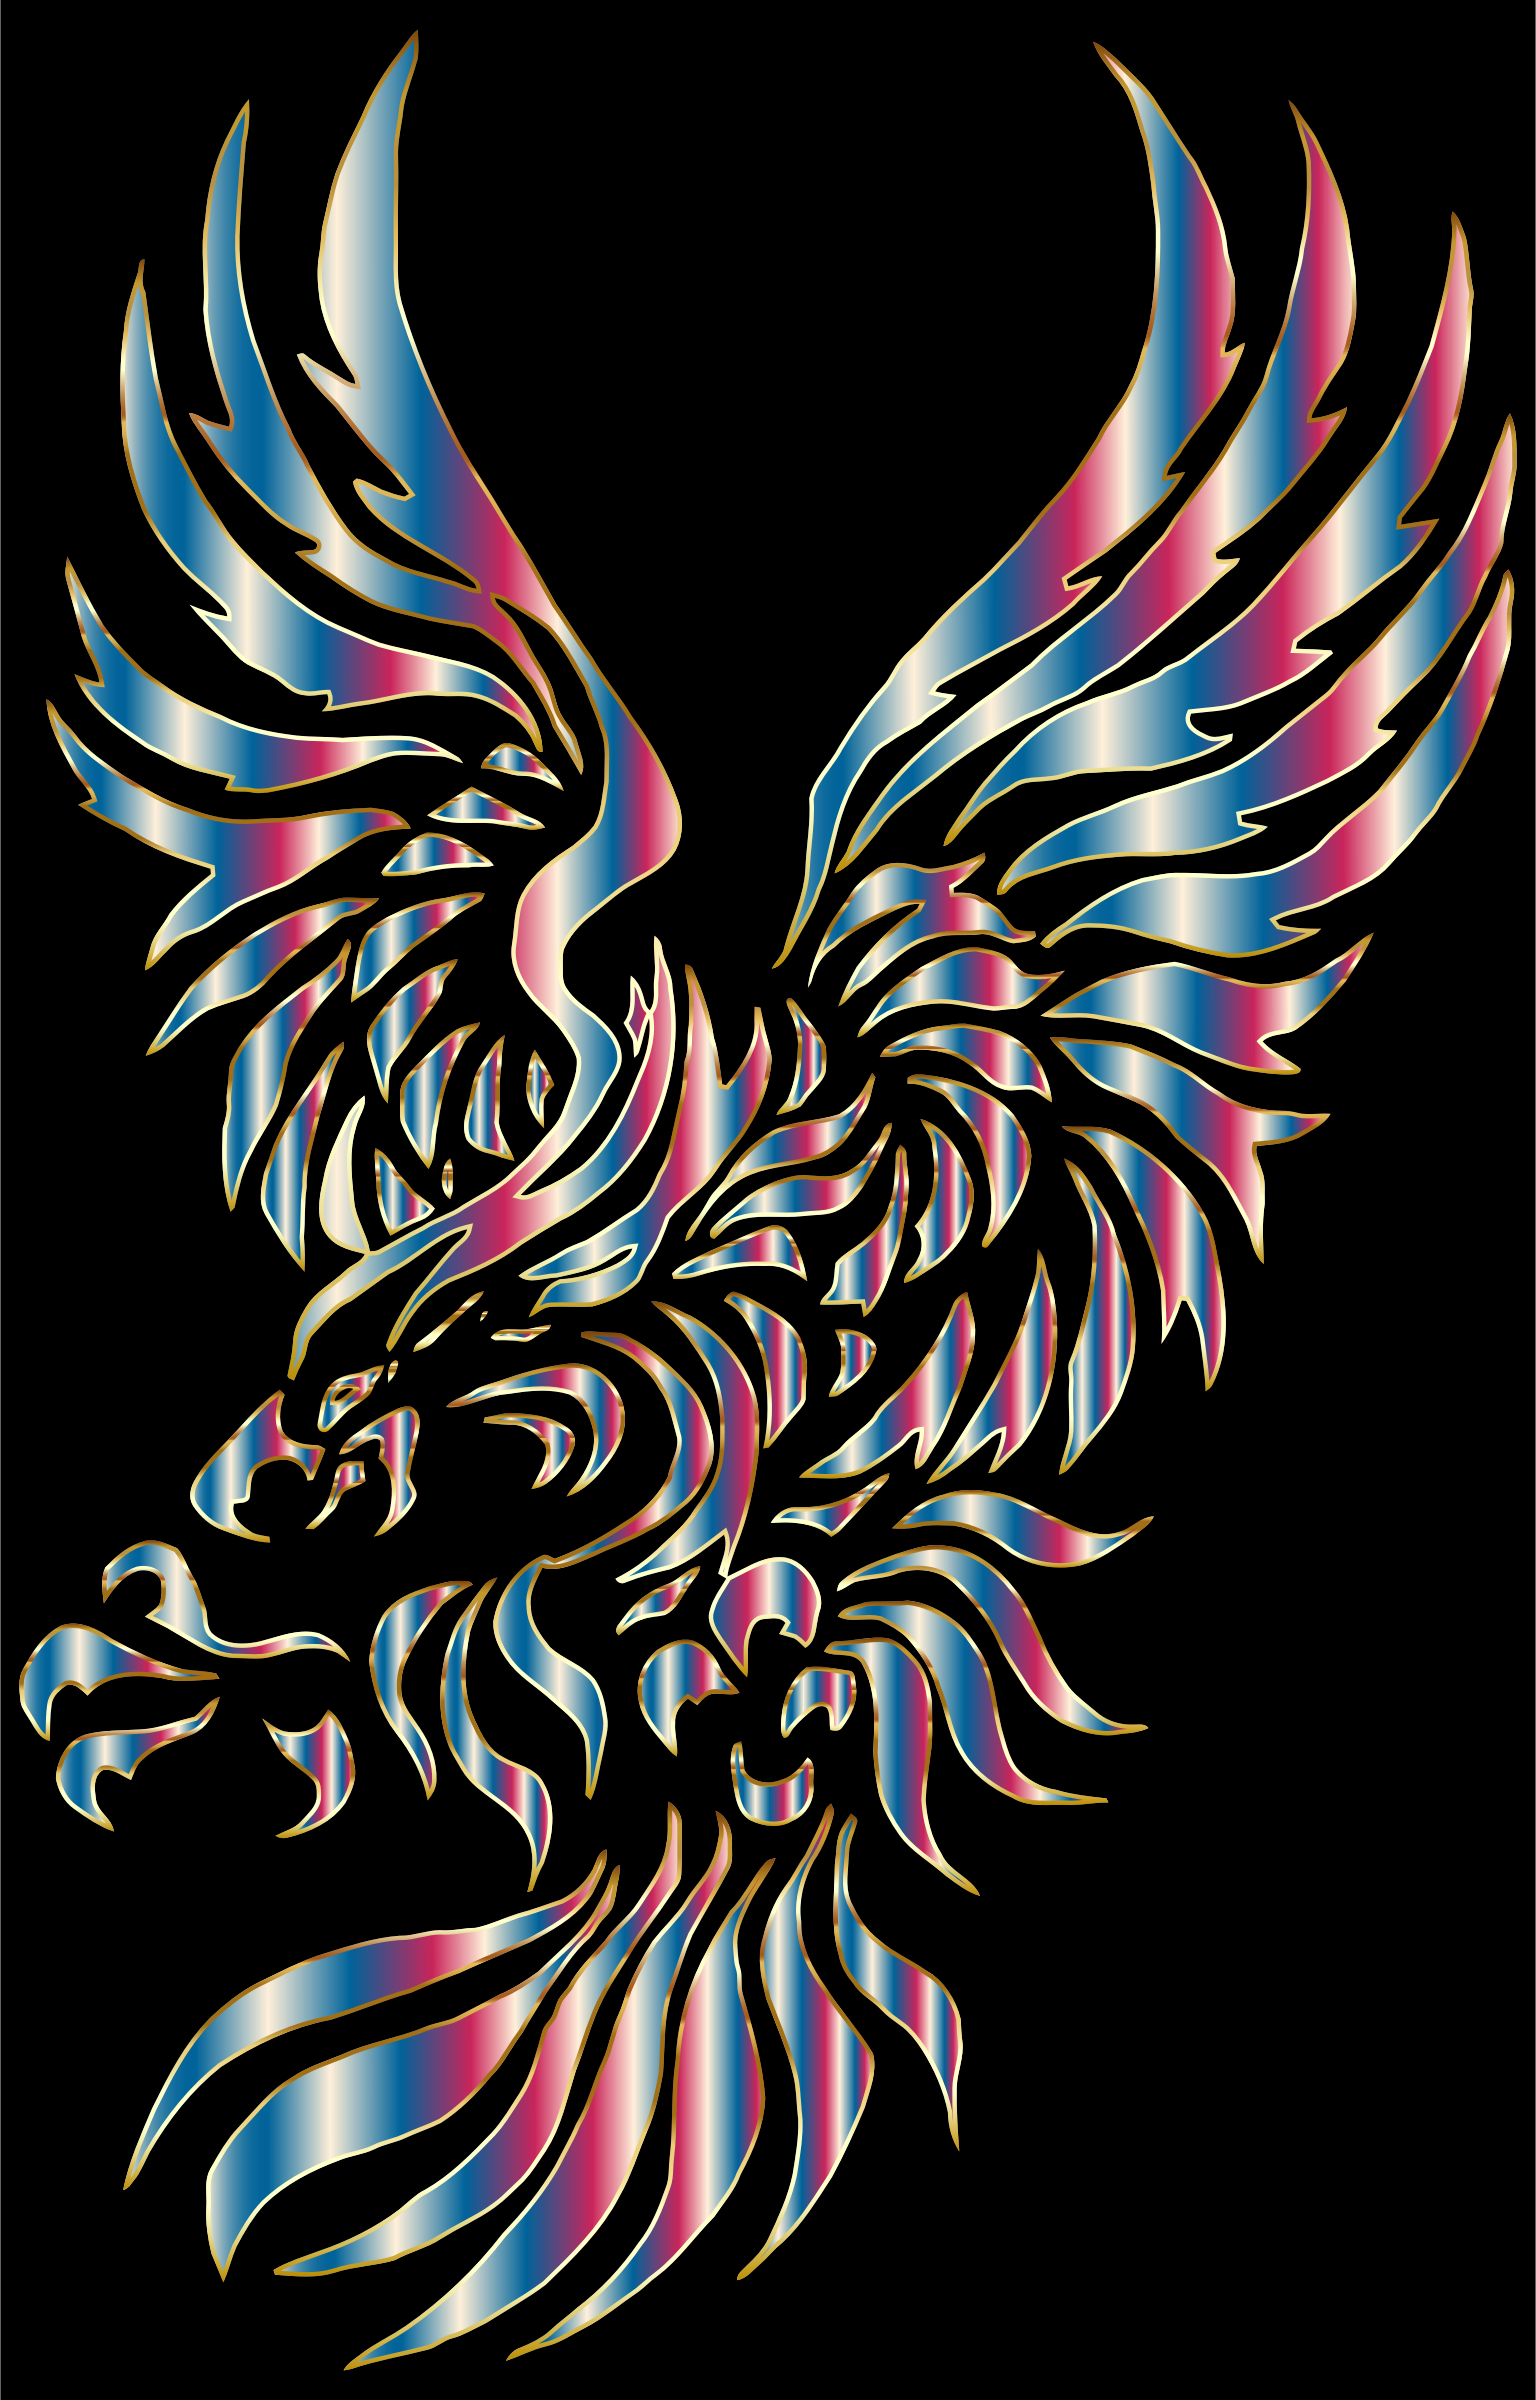 Chromatic Tribal Eagle 2 by GDJ